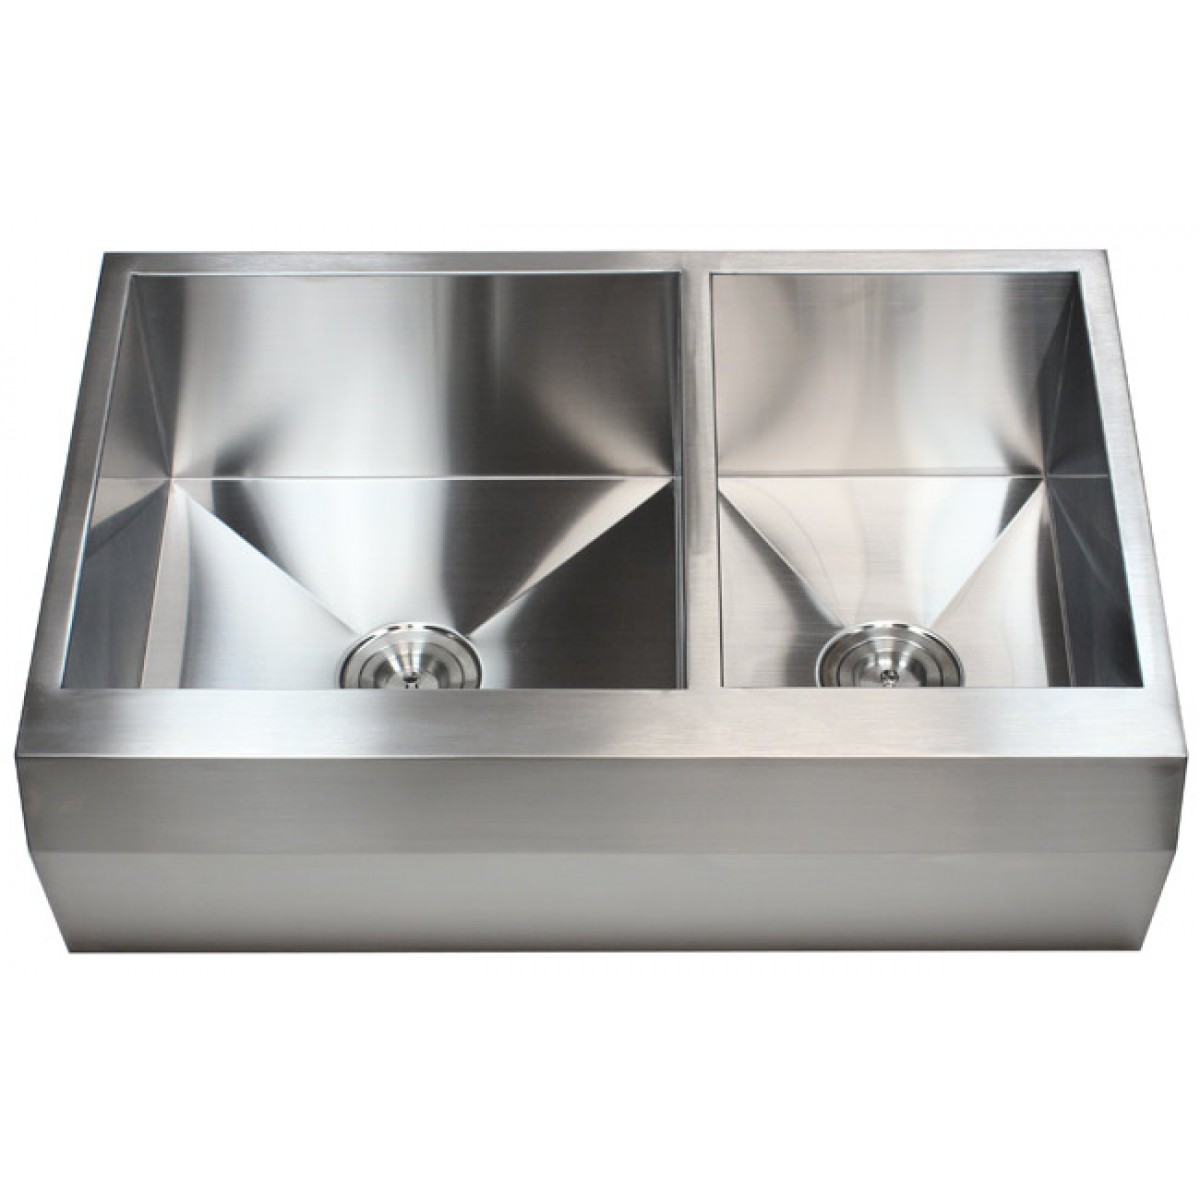 33 inch stainless steel 60 40 double bowl zero radius well Stainless steel farmhouse sink